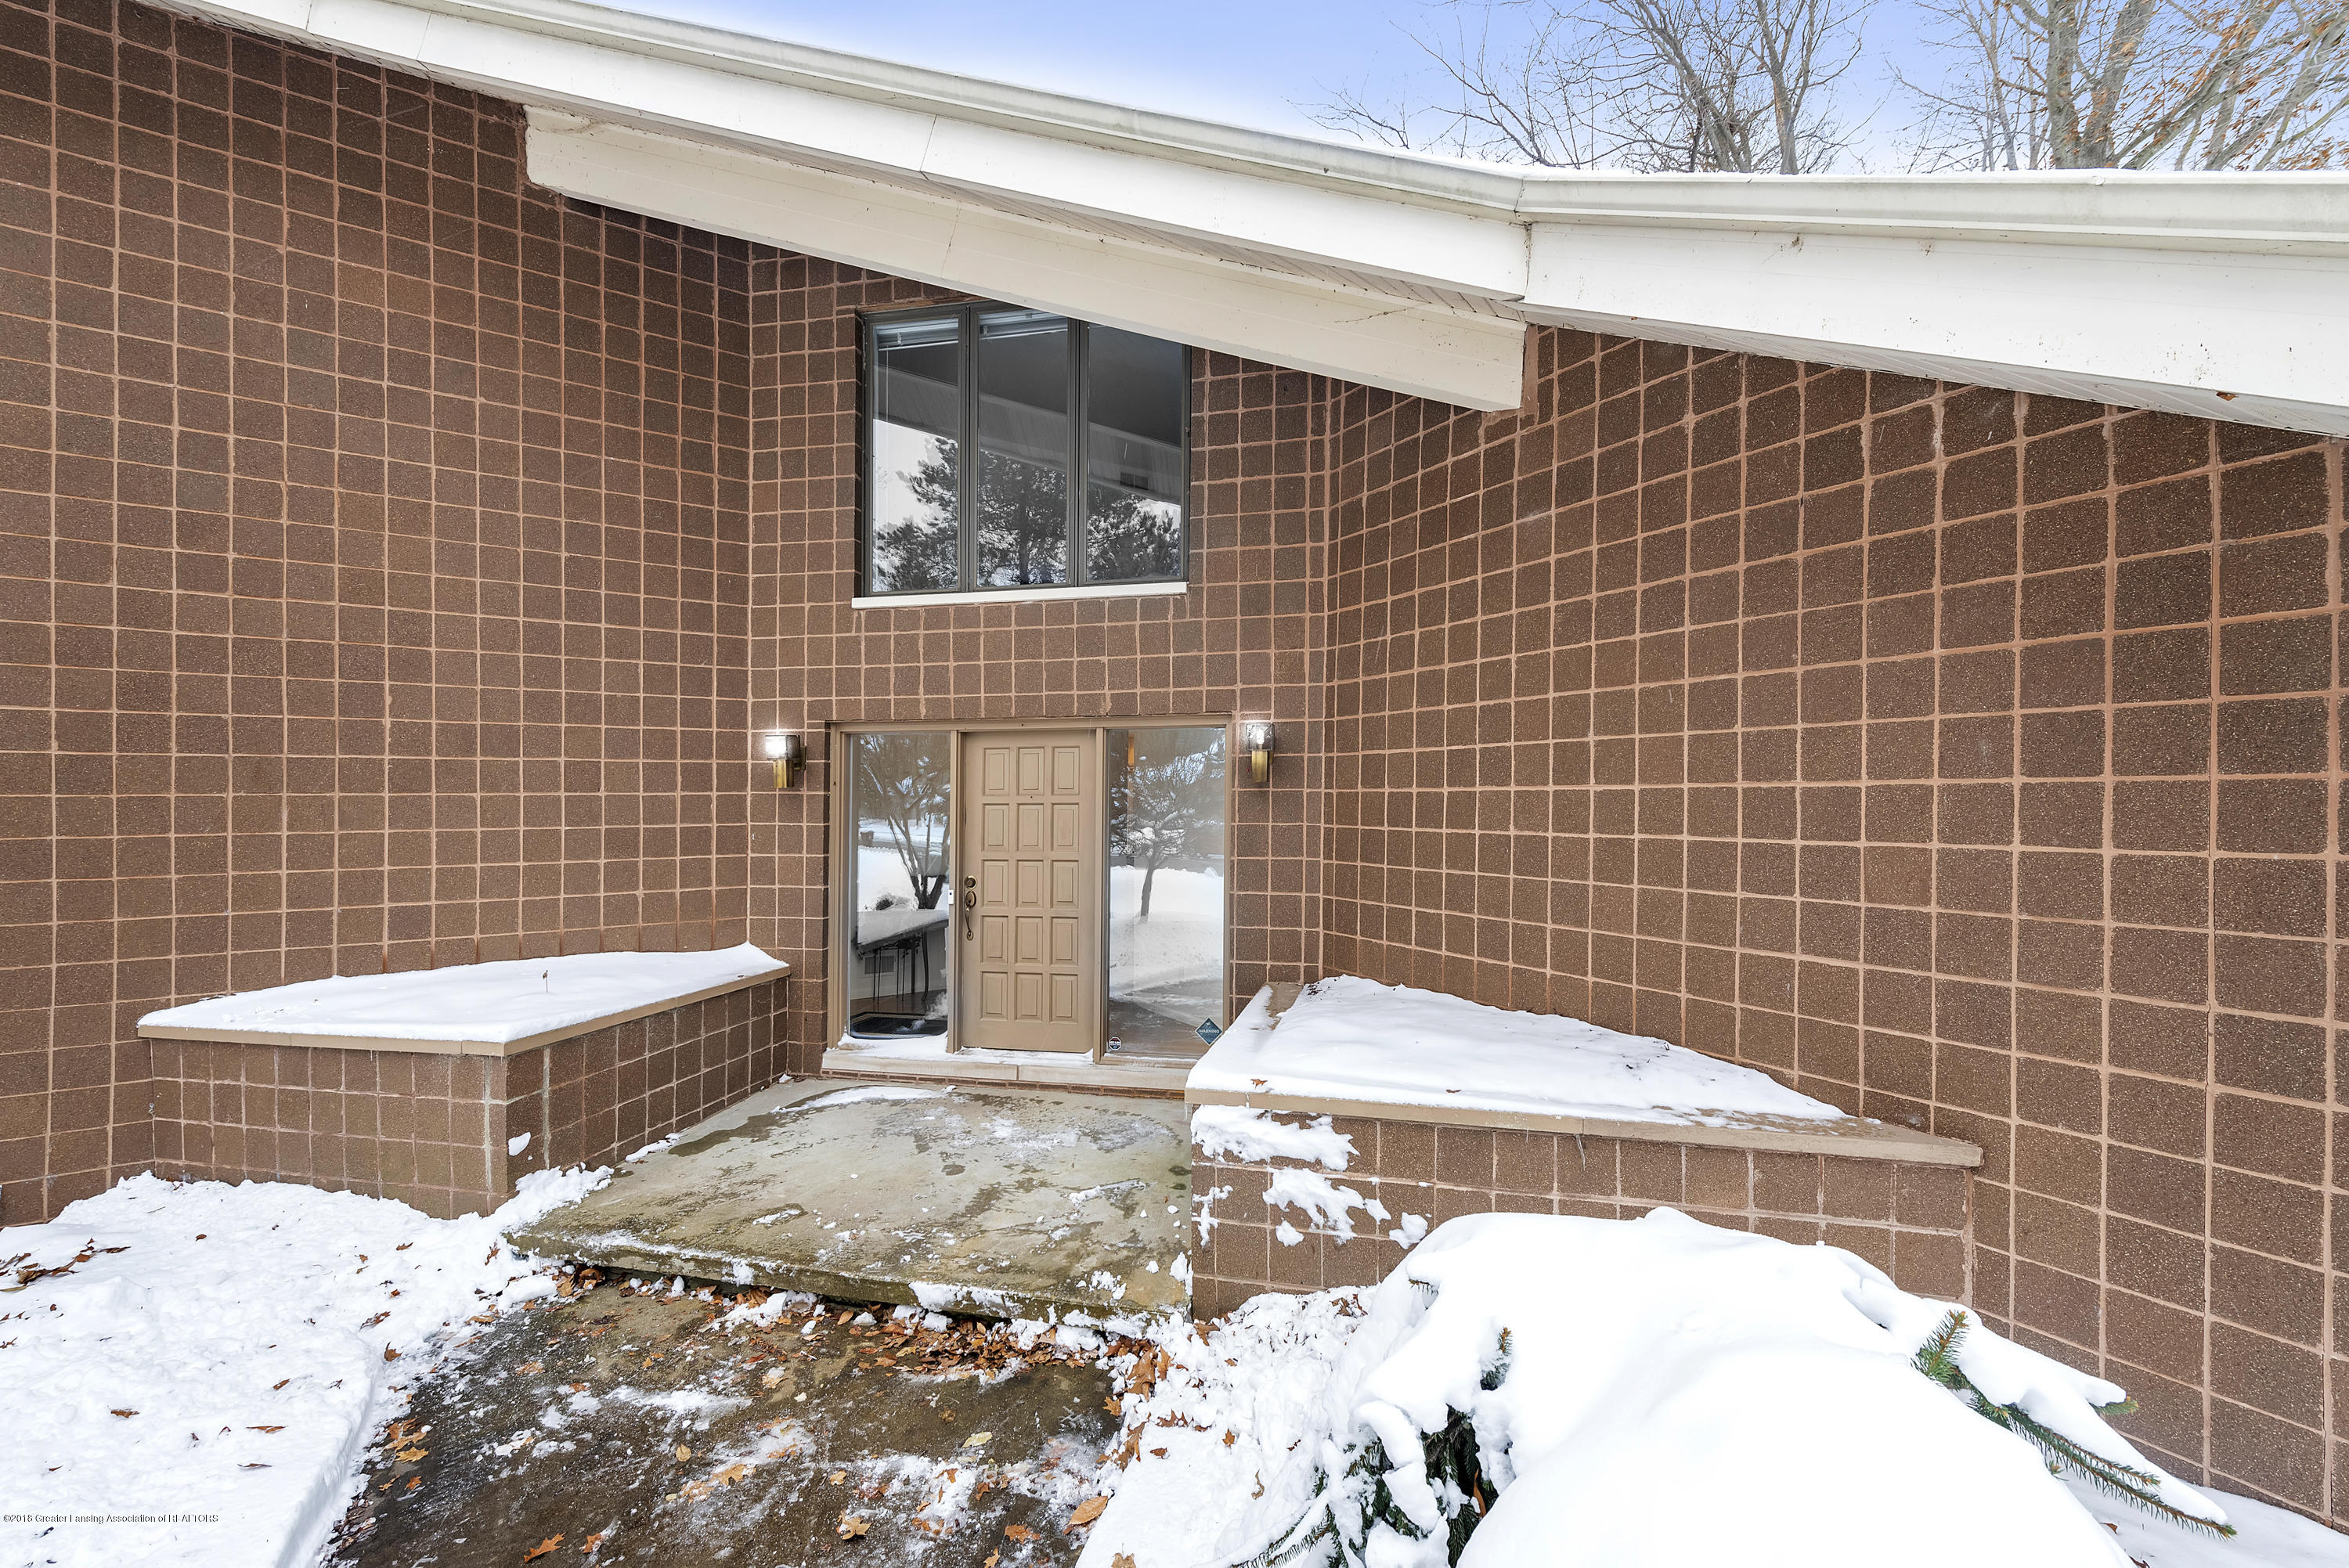 4031 Shoals Dr - 4031-Shoals-Drive-Okemos-MI-48864-window - 8